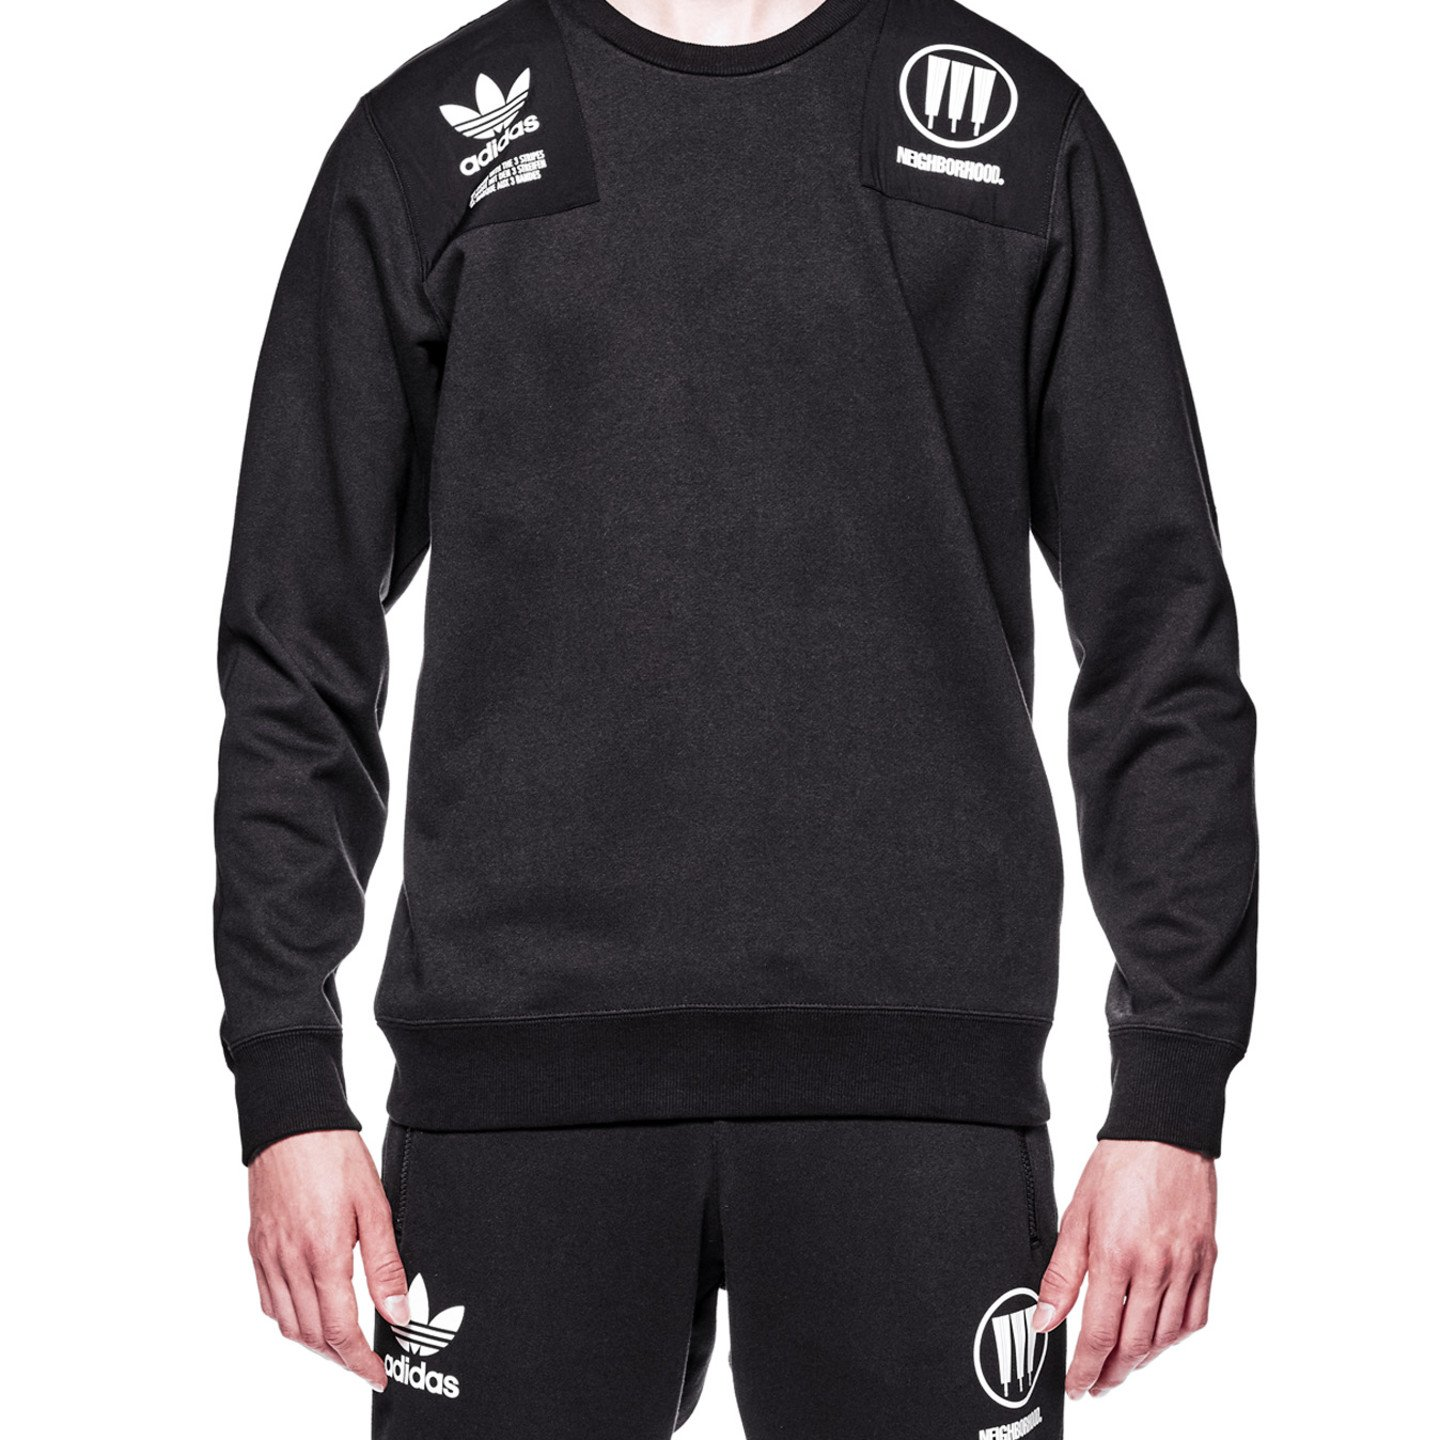 Adidas Neighborhood Commander Sweater Black / White CD7734